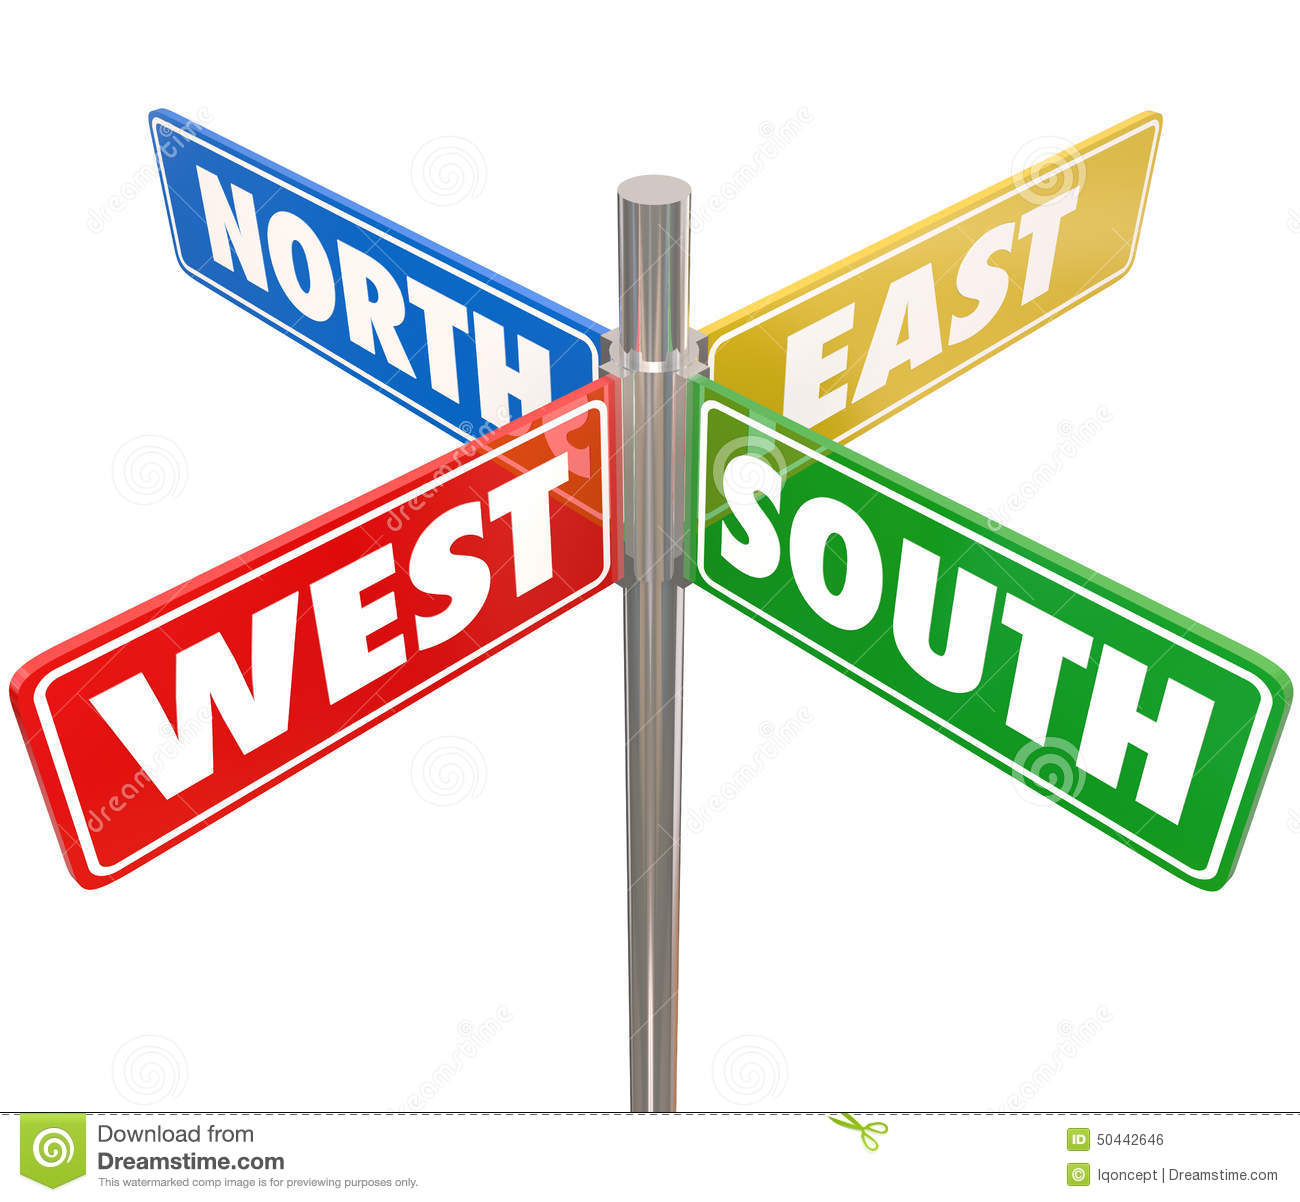 east west north south direction map with Stock Illustration North South East West Road Signs Travel Direction Way Route Marked Pointing You Different Directions To Roads Streets Image50442646 on East West additionally Map Of Usa 772 likewise Vastu together with 9145054 in addition Cardiff Millennium Stadium Seating Plan.